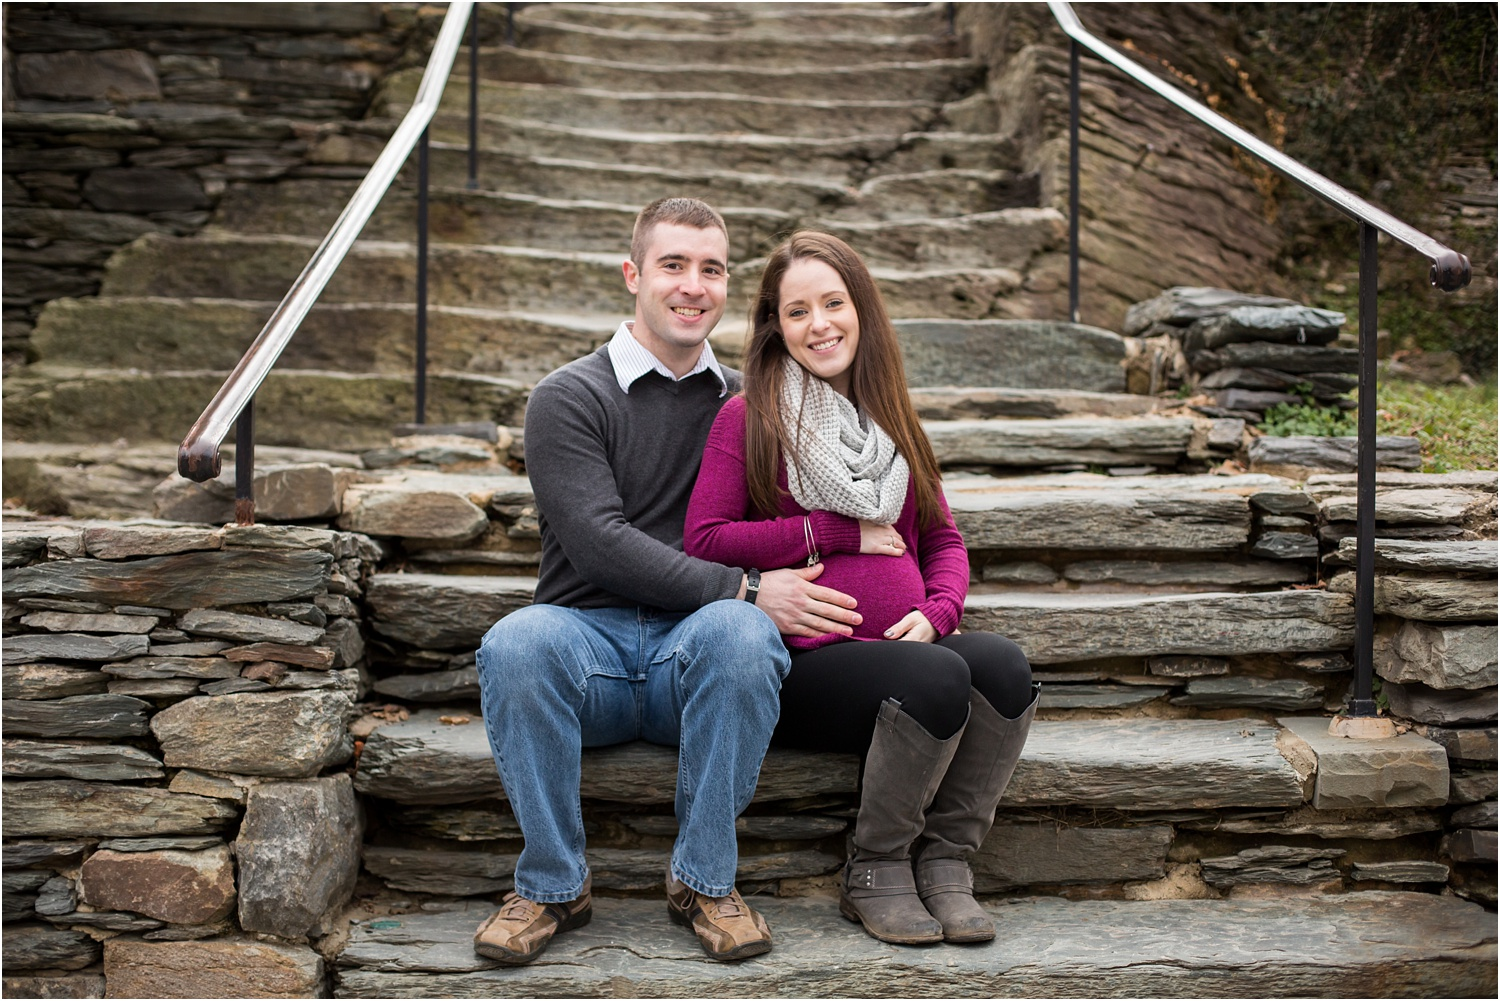 Kuklis_Harrisonburg_Va_Family_Photography_0013.jpg